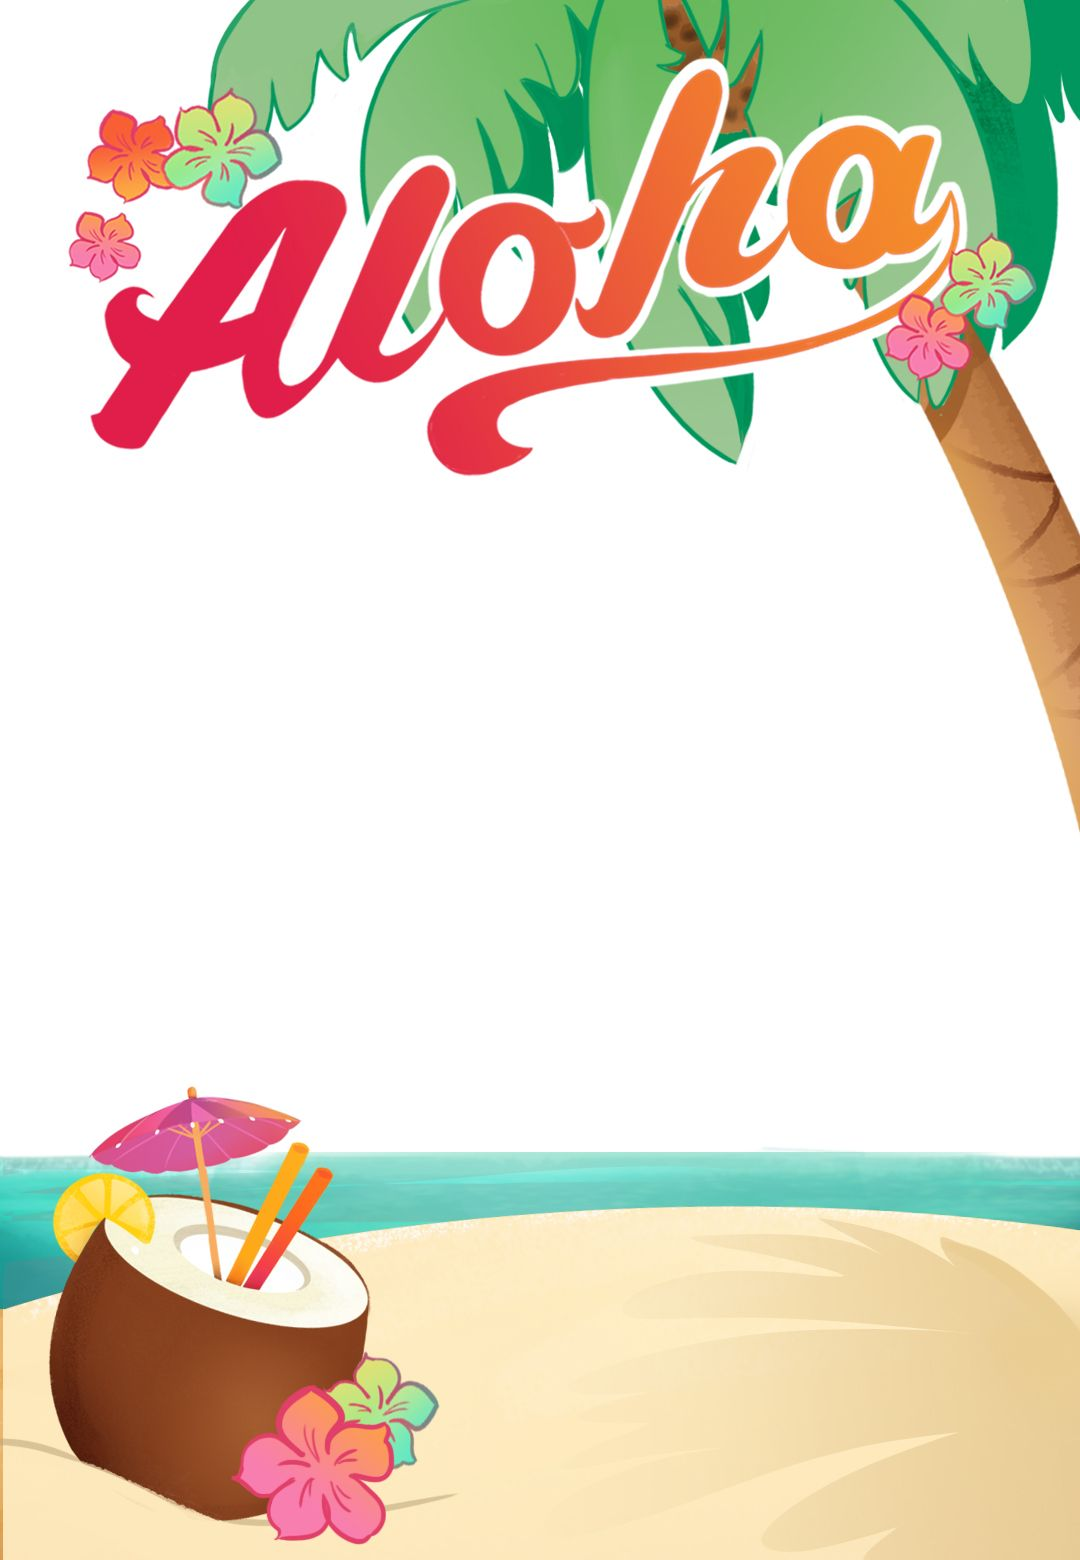 Hawaiian luau party clipart clip art download Luau Party - Free Printable Summer Party Invitation Template ... clip art download